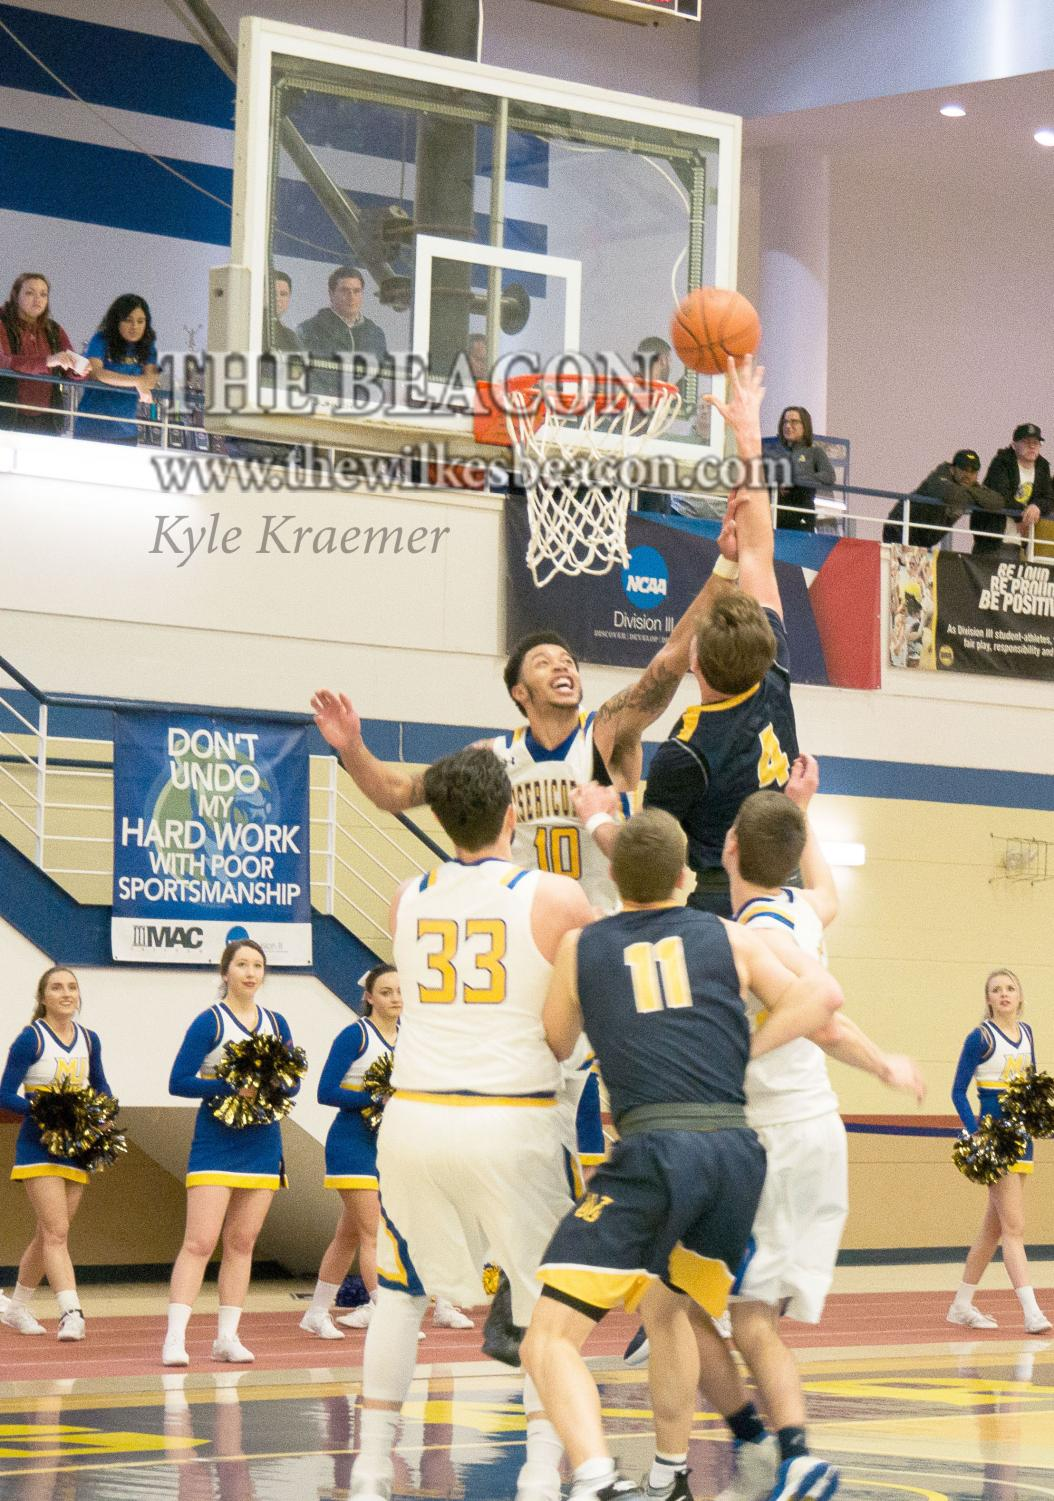 Senior Tommy Bowen secures the basket under the net for Wilkes.